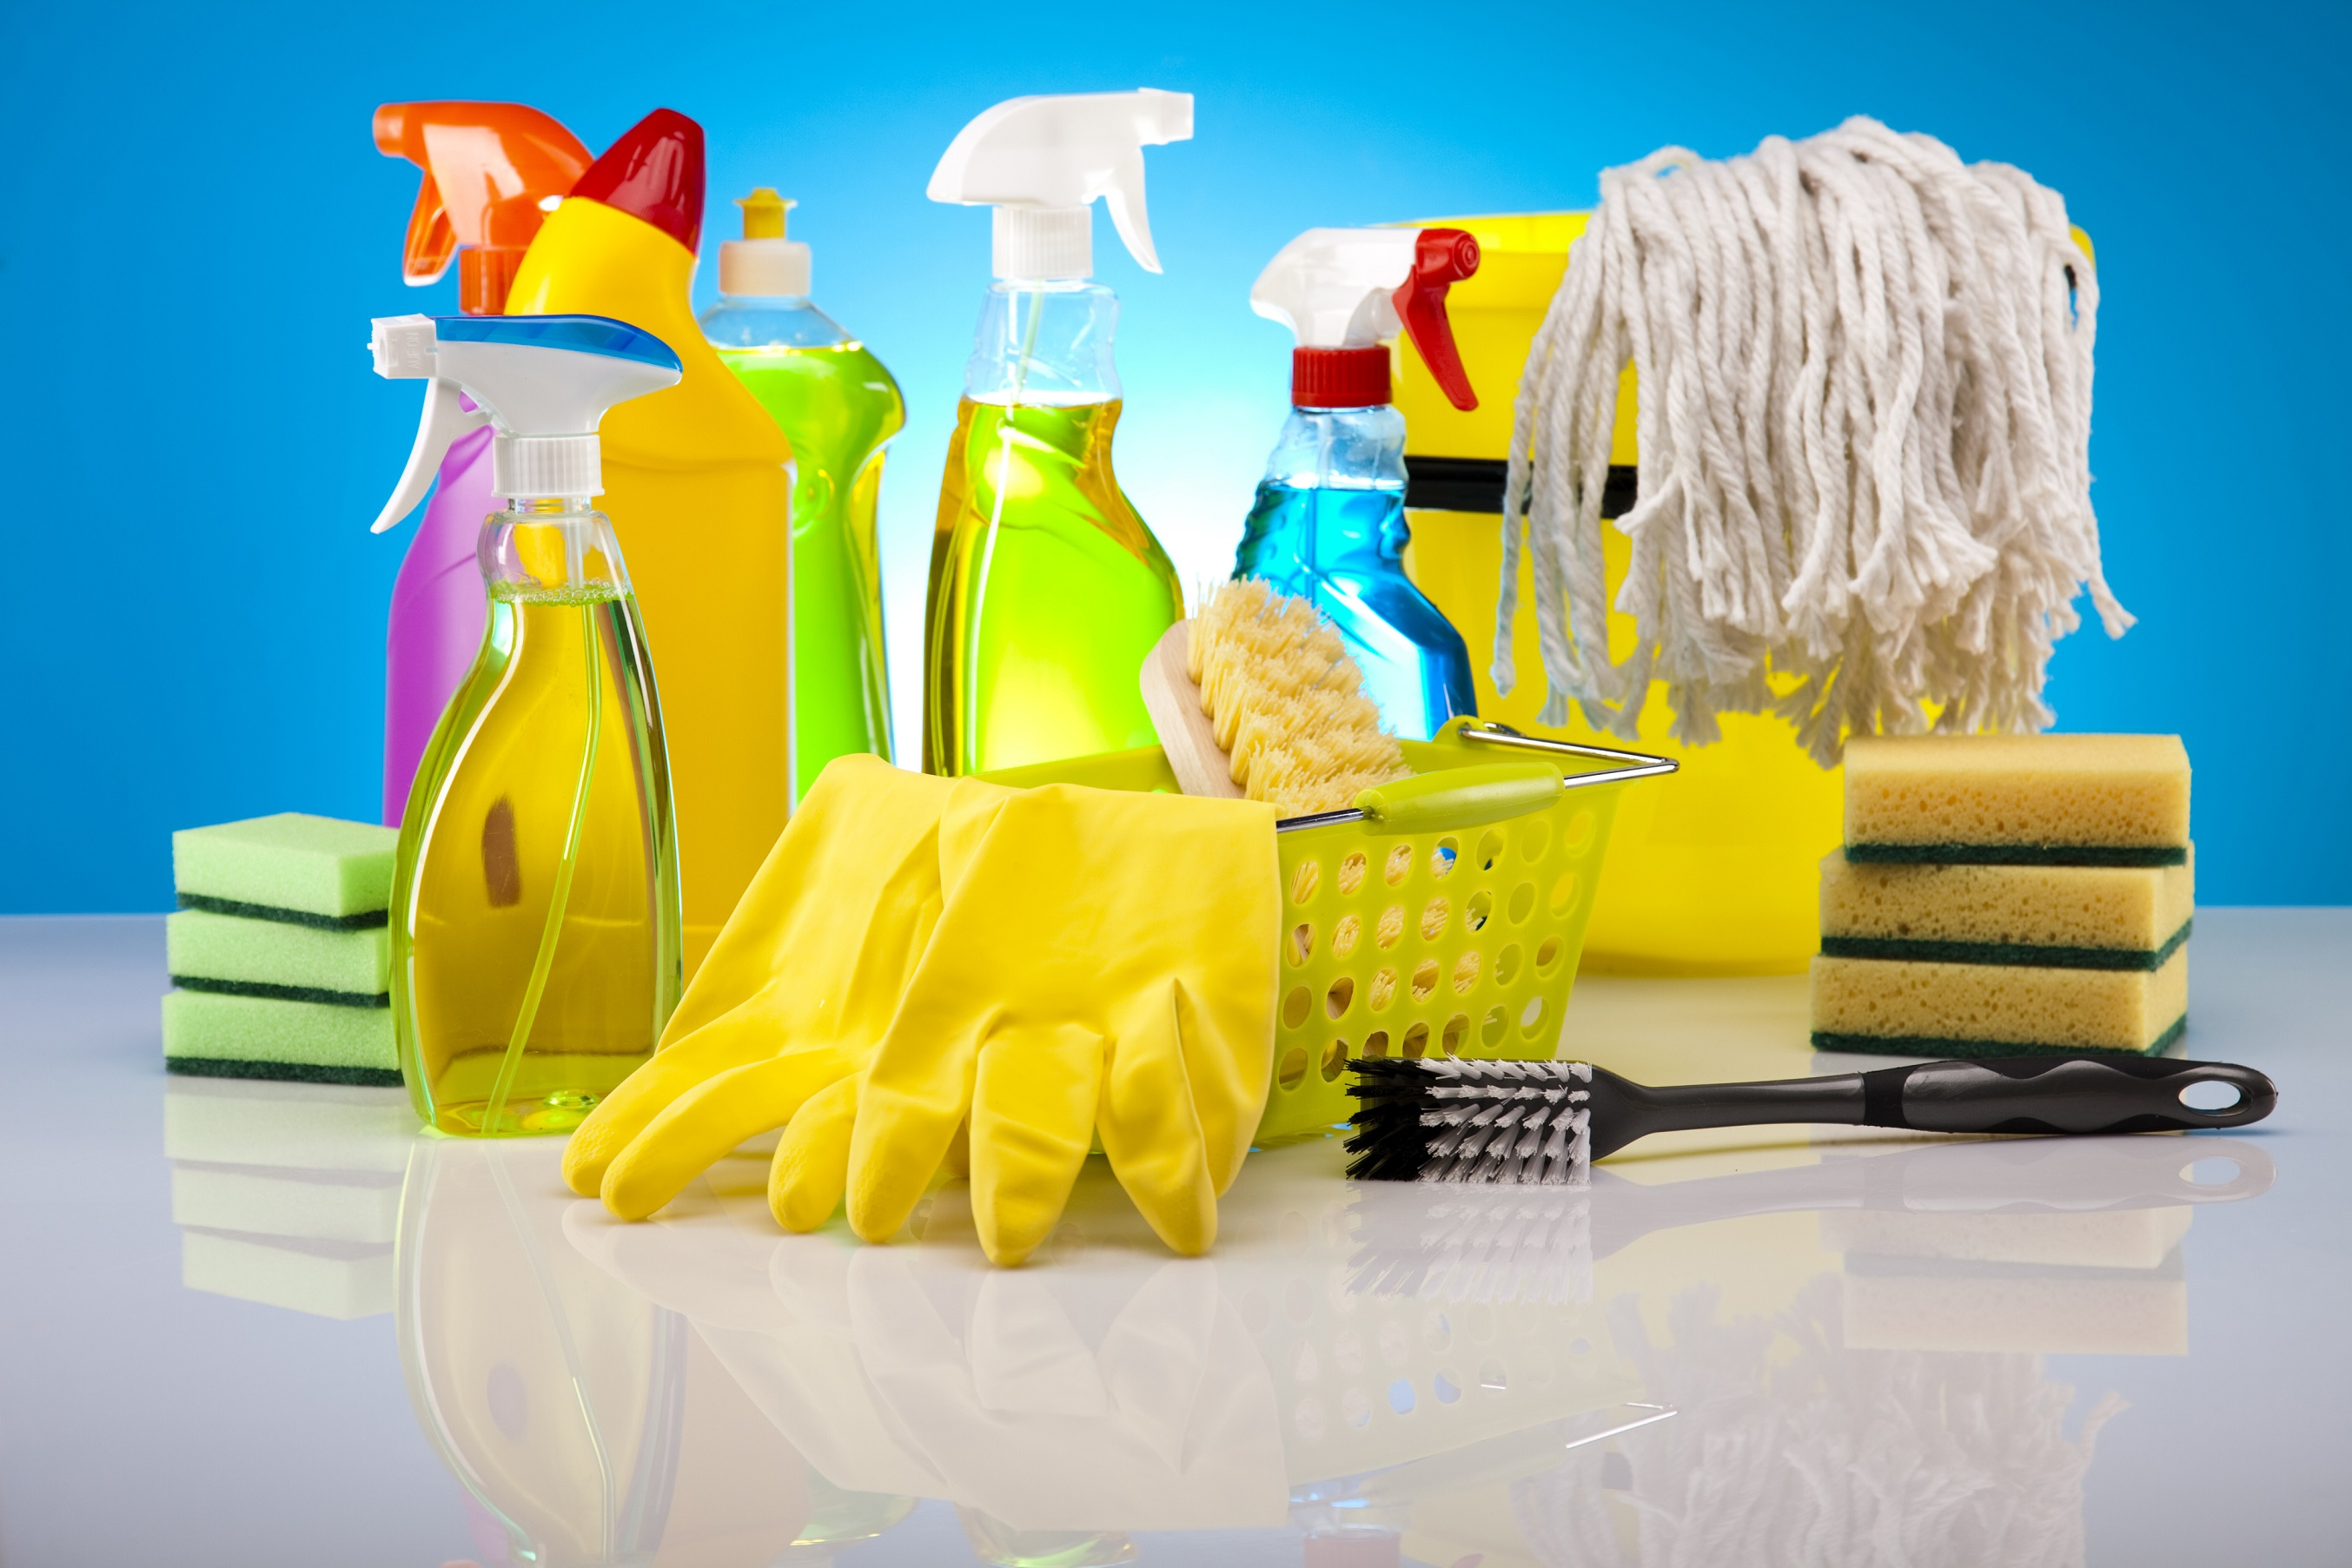 Do vacant cleaner help to have the house cleaned?